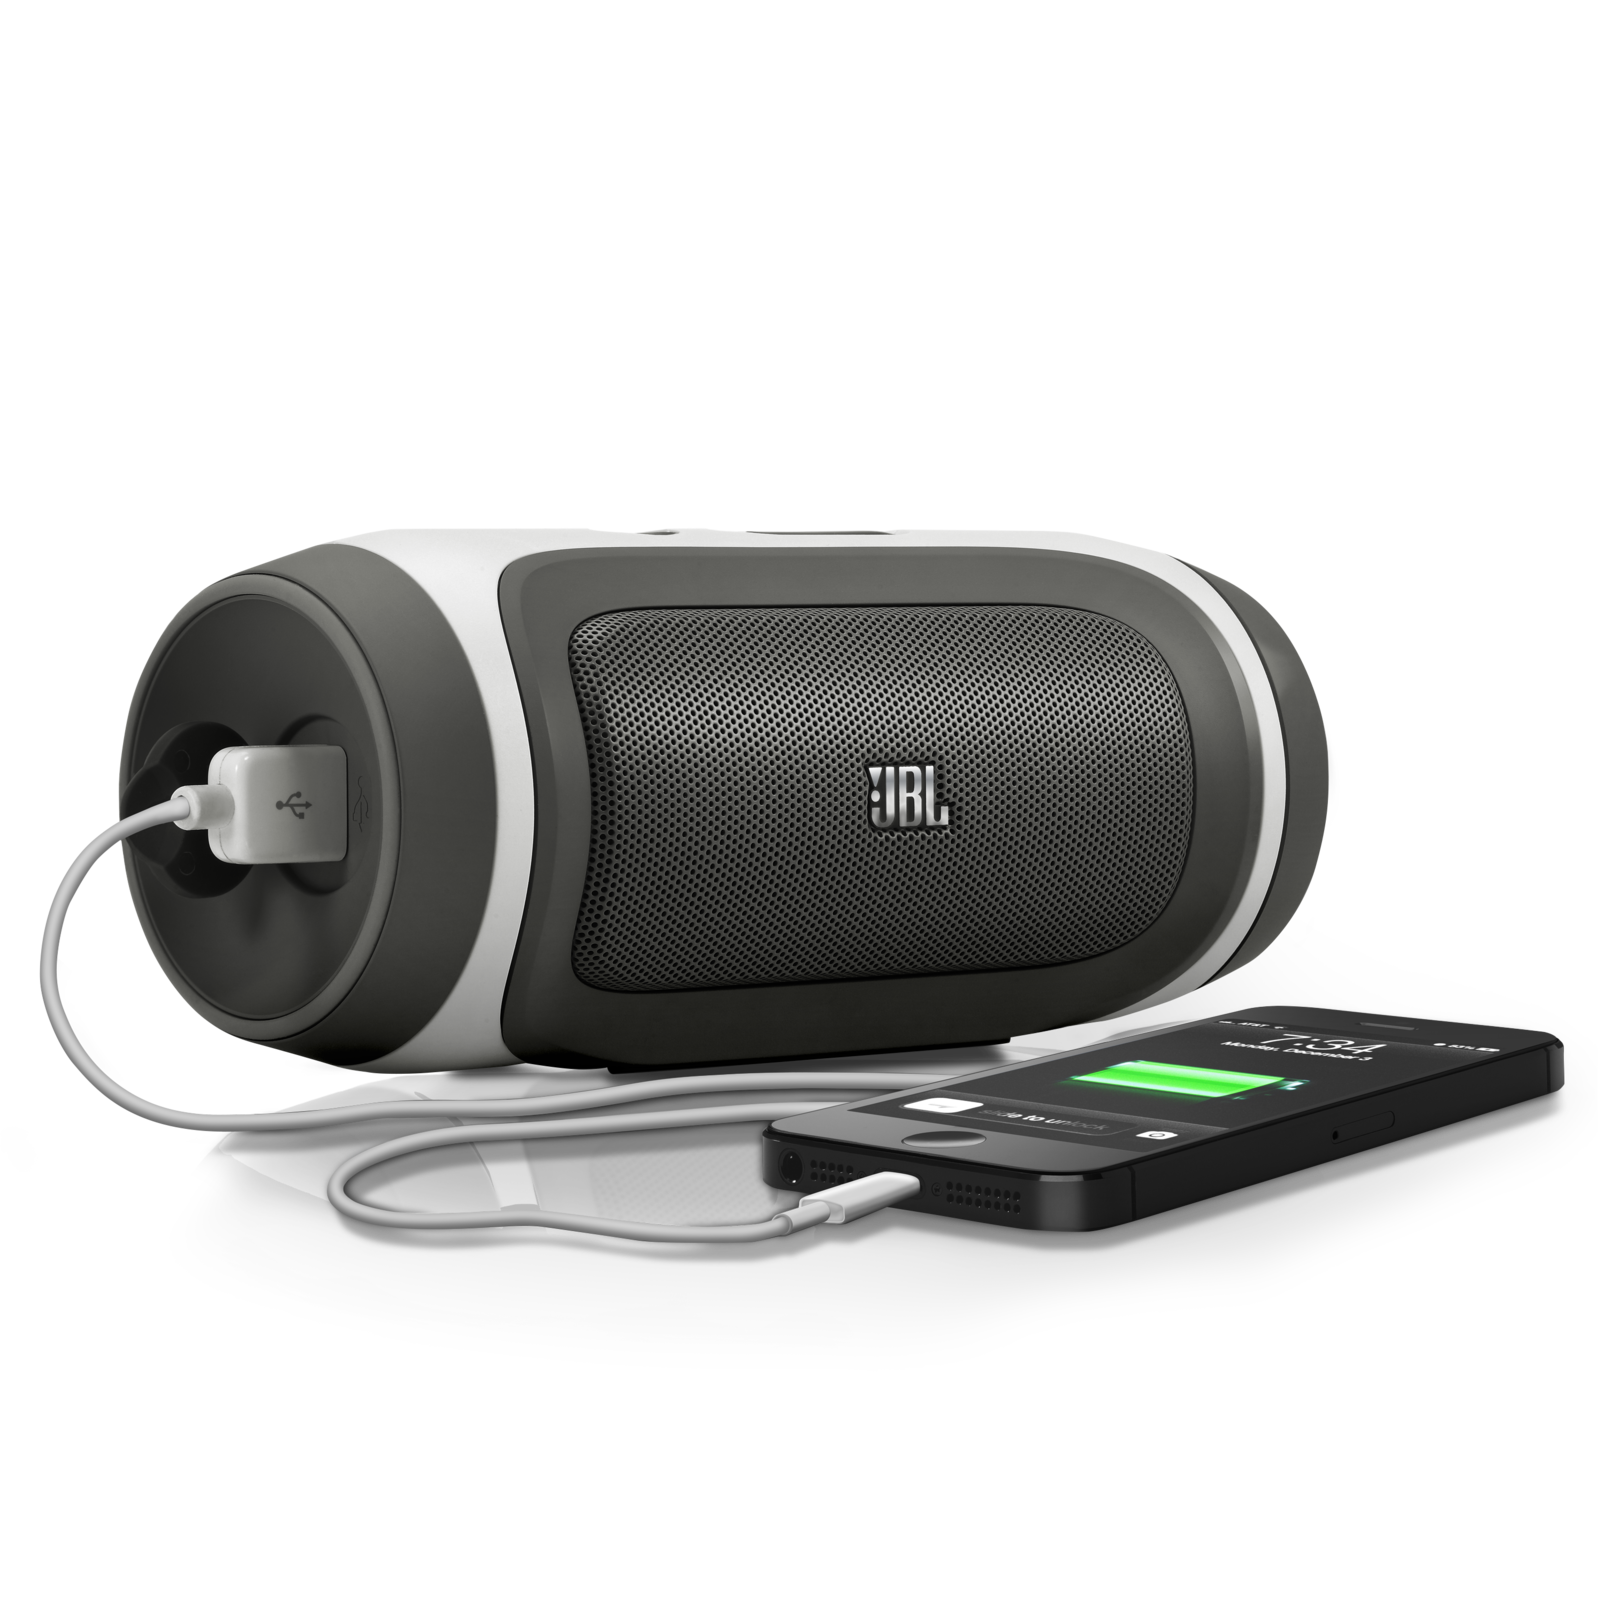 Jbl Charge Portable Wireless Bluetooth Speaker With Usb Charger Current Booster Power Powered Stereo Computer